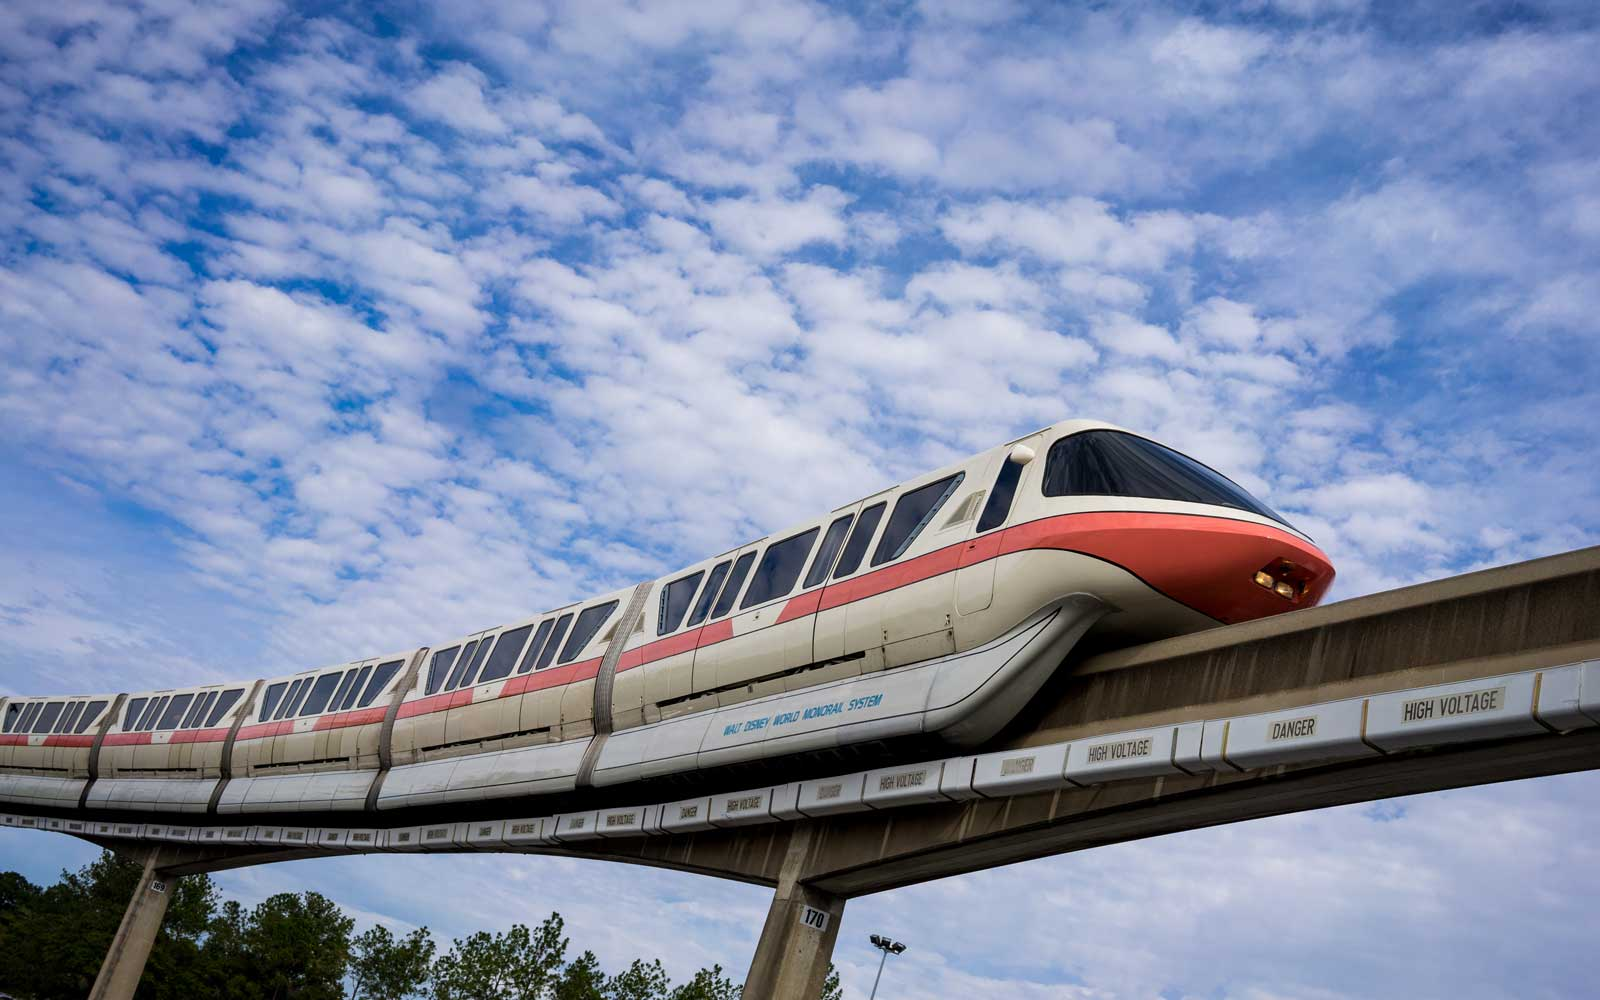 The Walt Disney World Monorail glides along the Epcot line, Epcot, Walt Disney World, Florida.